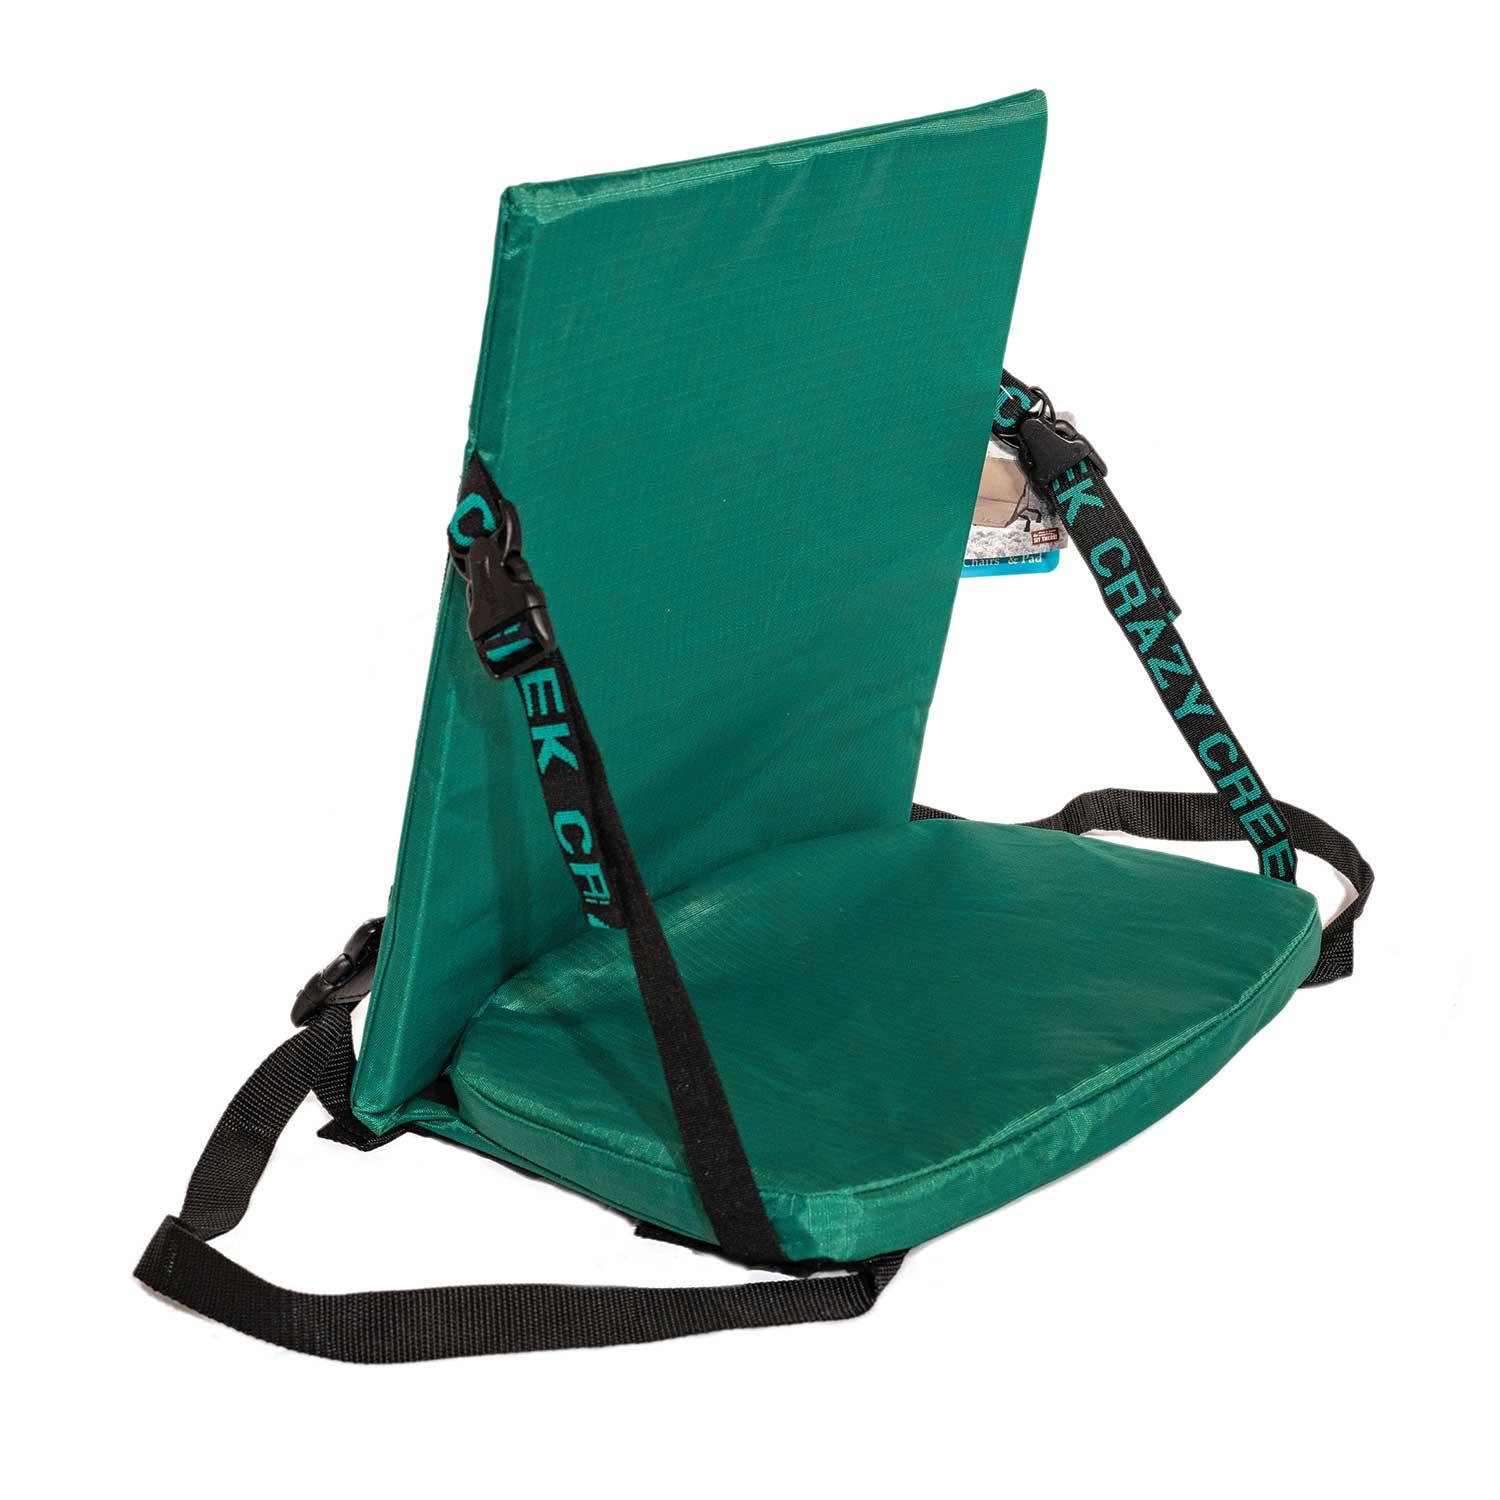 Canoe Chair Iii By Crazy Creek Camp Amp Paddle Chairs